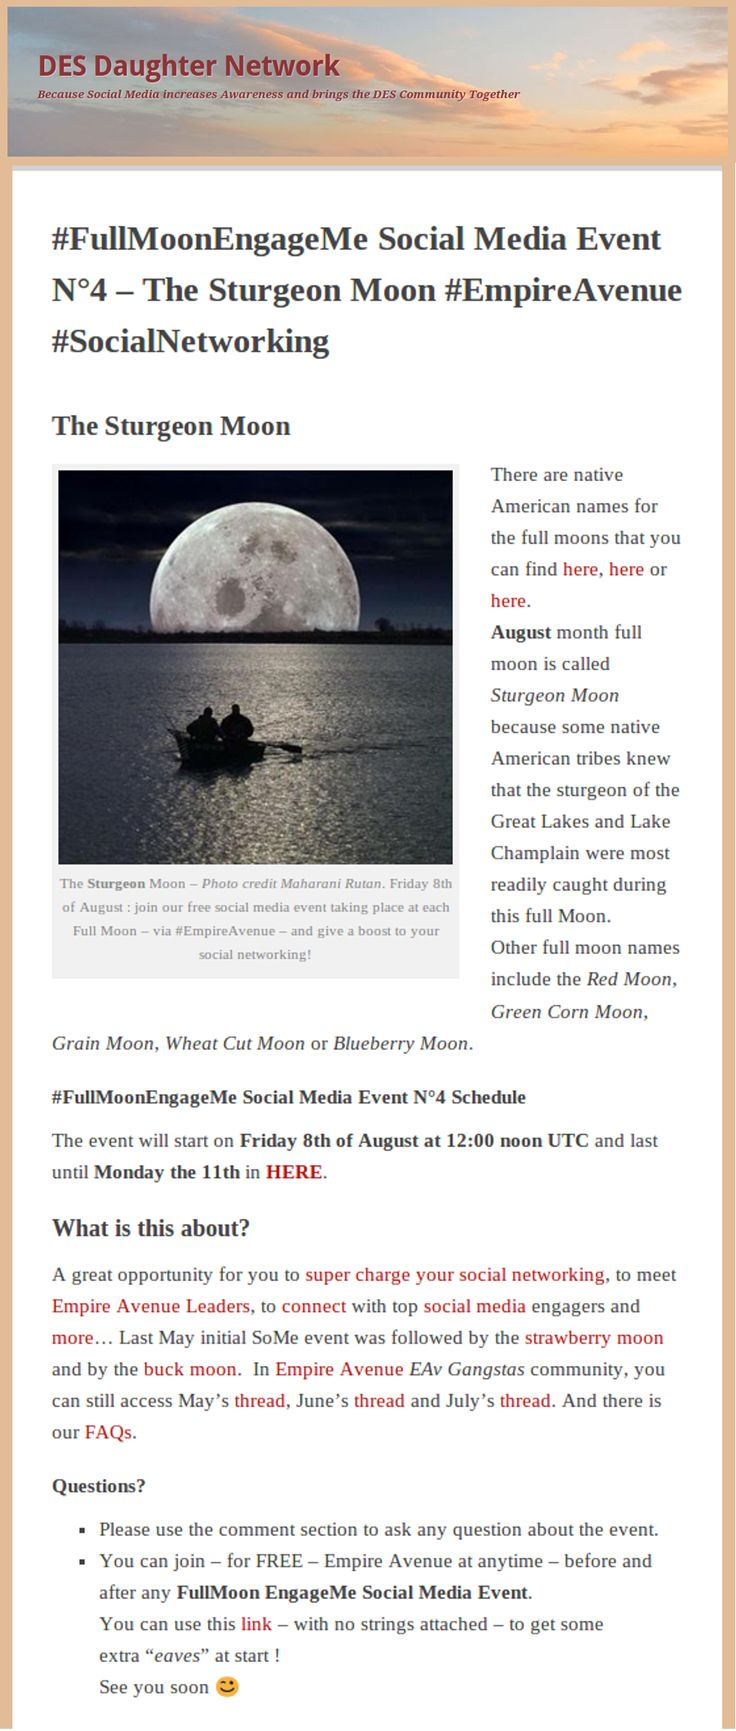 #FullMoonEngageMe Social Media Event N°4 – The Sturgeon Moon #EmpireAvenue #SocialNetworking by DES DAUGHTER #empireavenue http://desdaughter.wordpress.com/2014/07/25/full-moon-engage-me-social-media-event-sturgeon-moon/